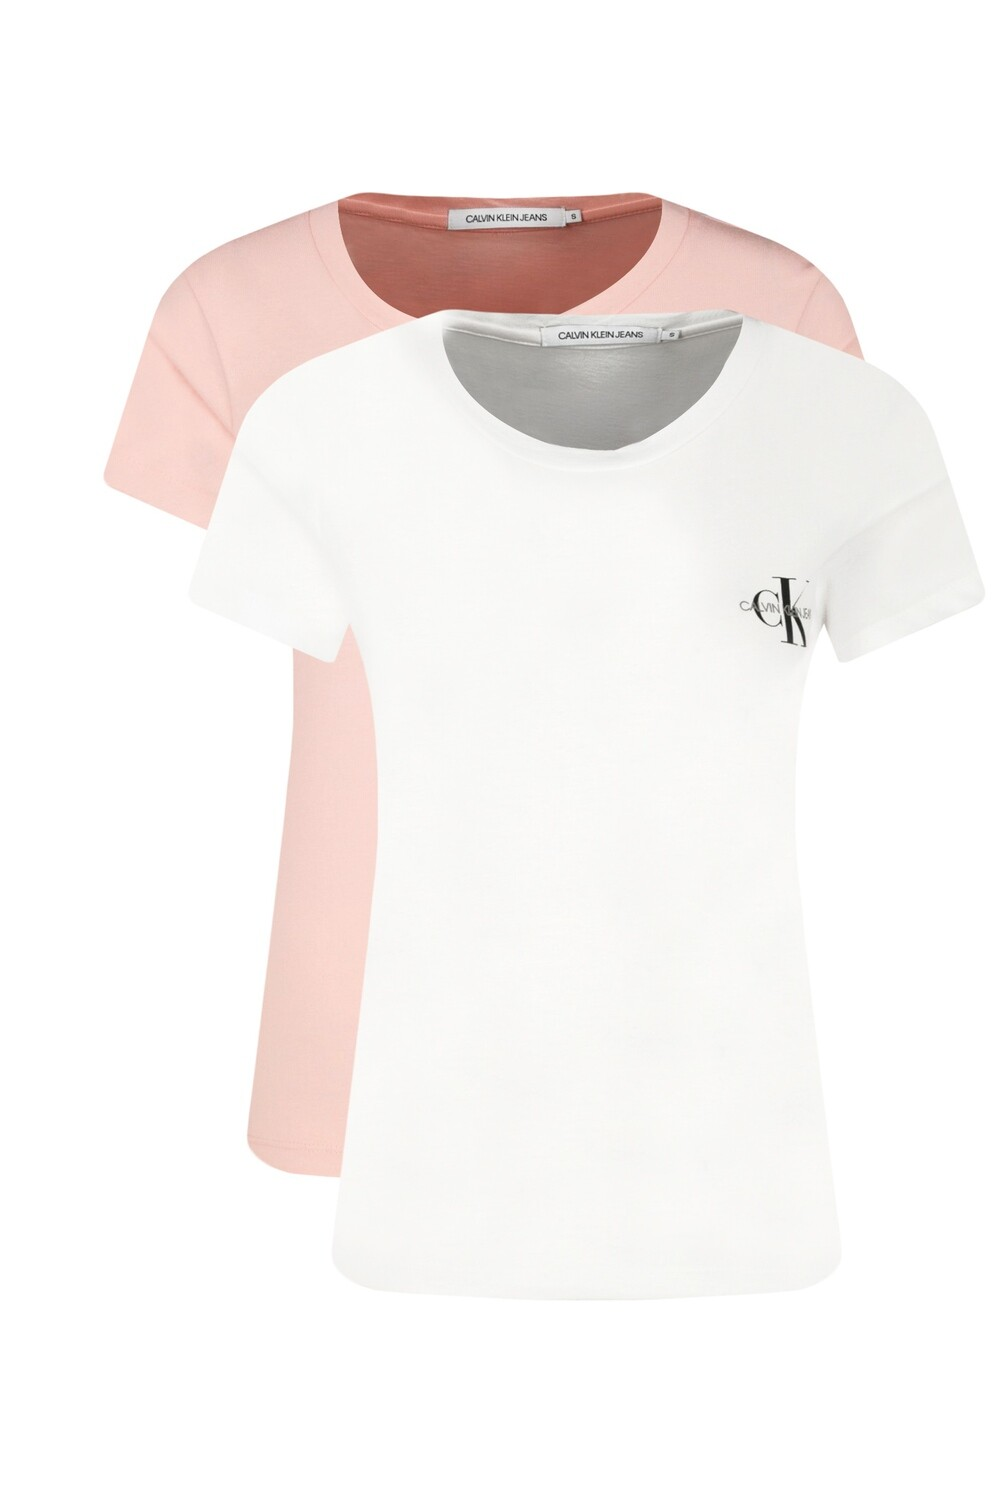 CALVIN KLEIN 2 PACK SLIM ORGANIC COTTON T-SHIRT